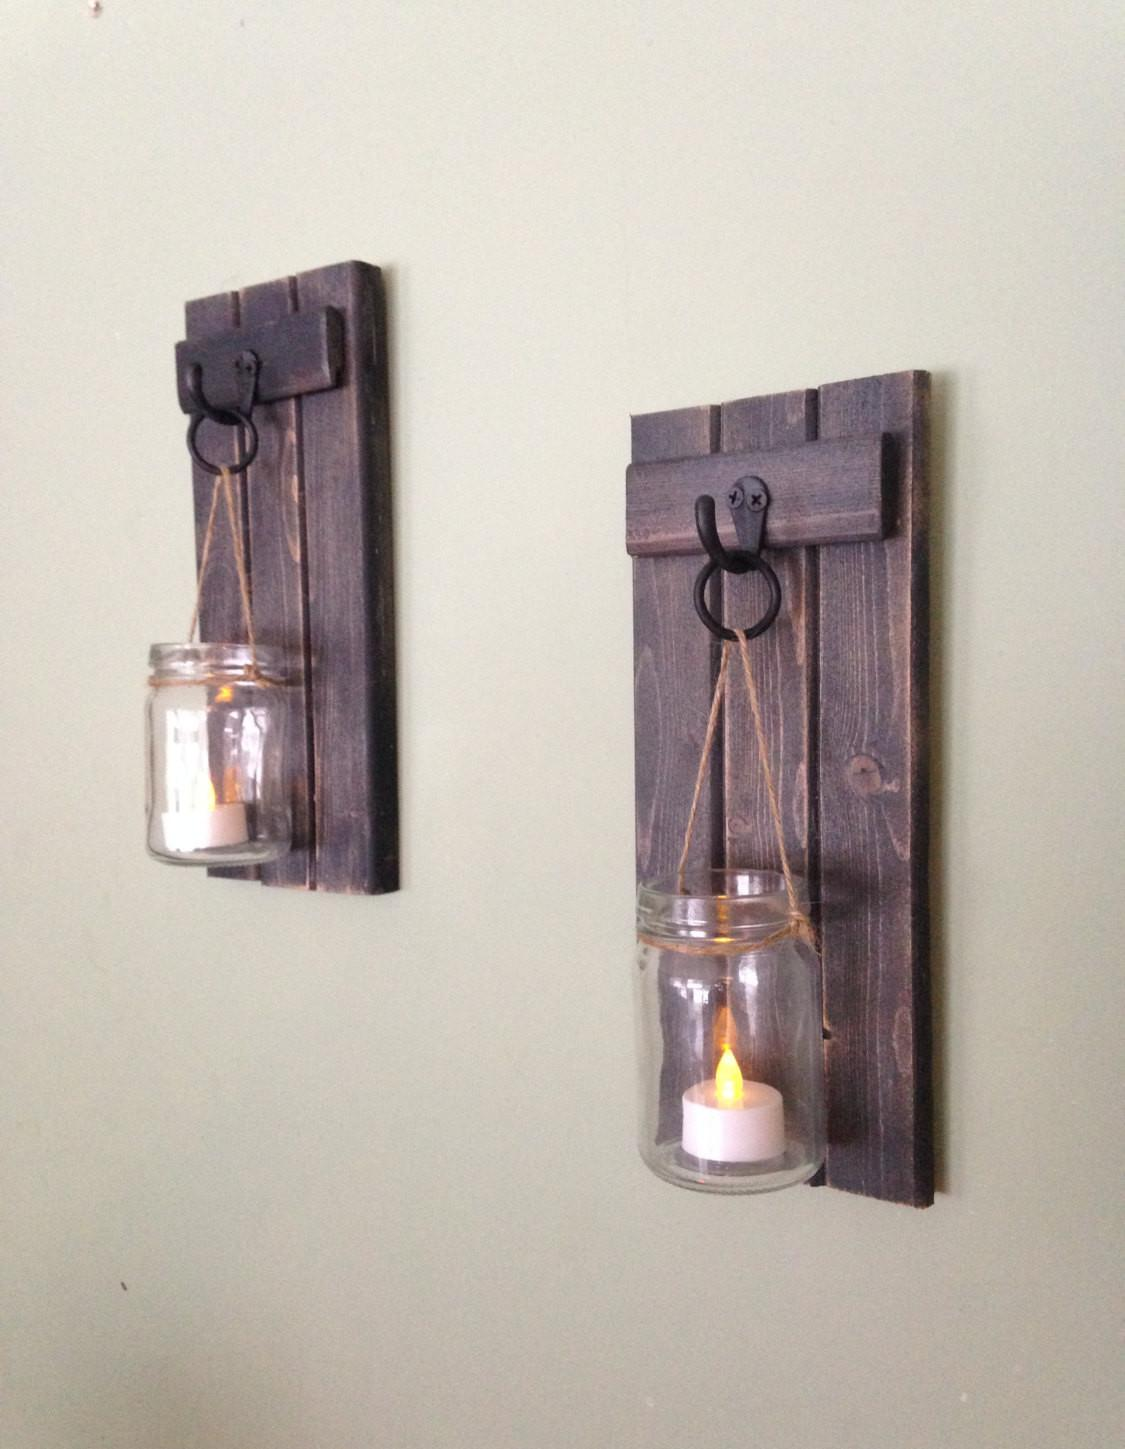 Wooden Candle Holder Rustic Wall Sconce Mason Jar